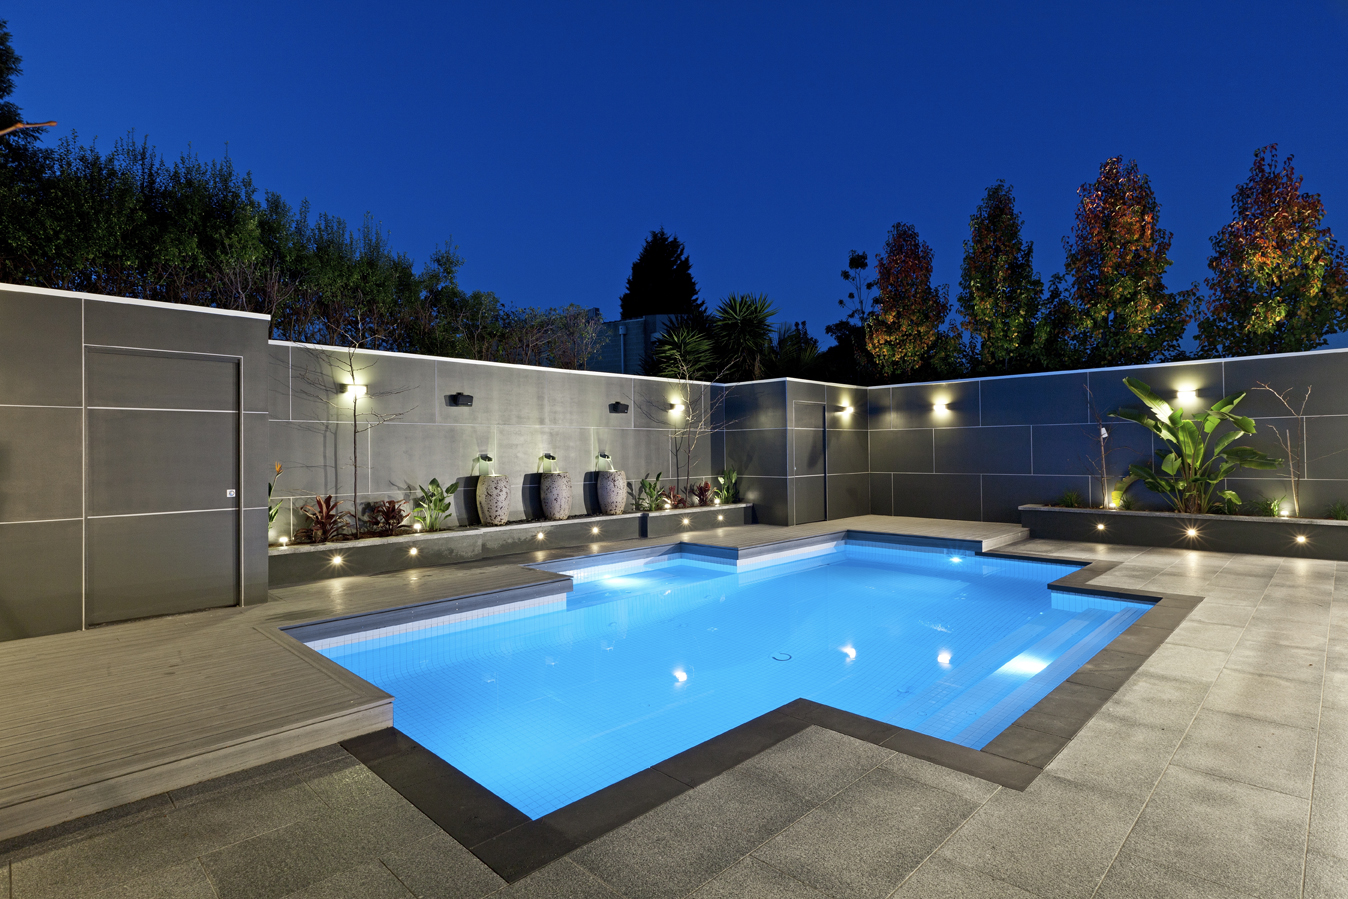 Marvelous Backyard Landscaping Ideas Swimming Pool Design